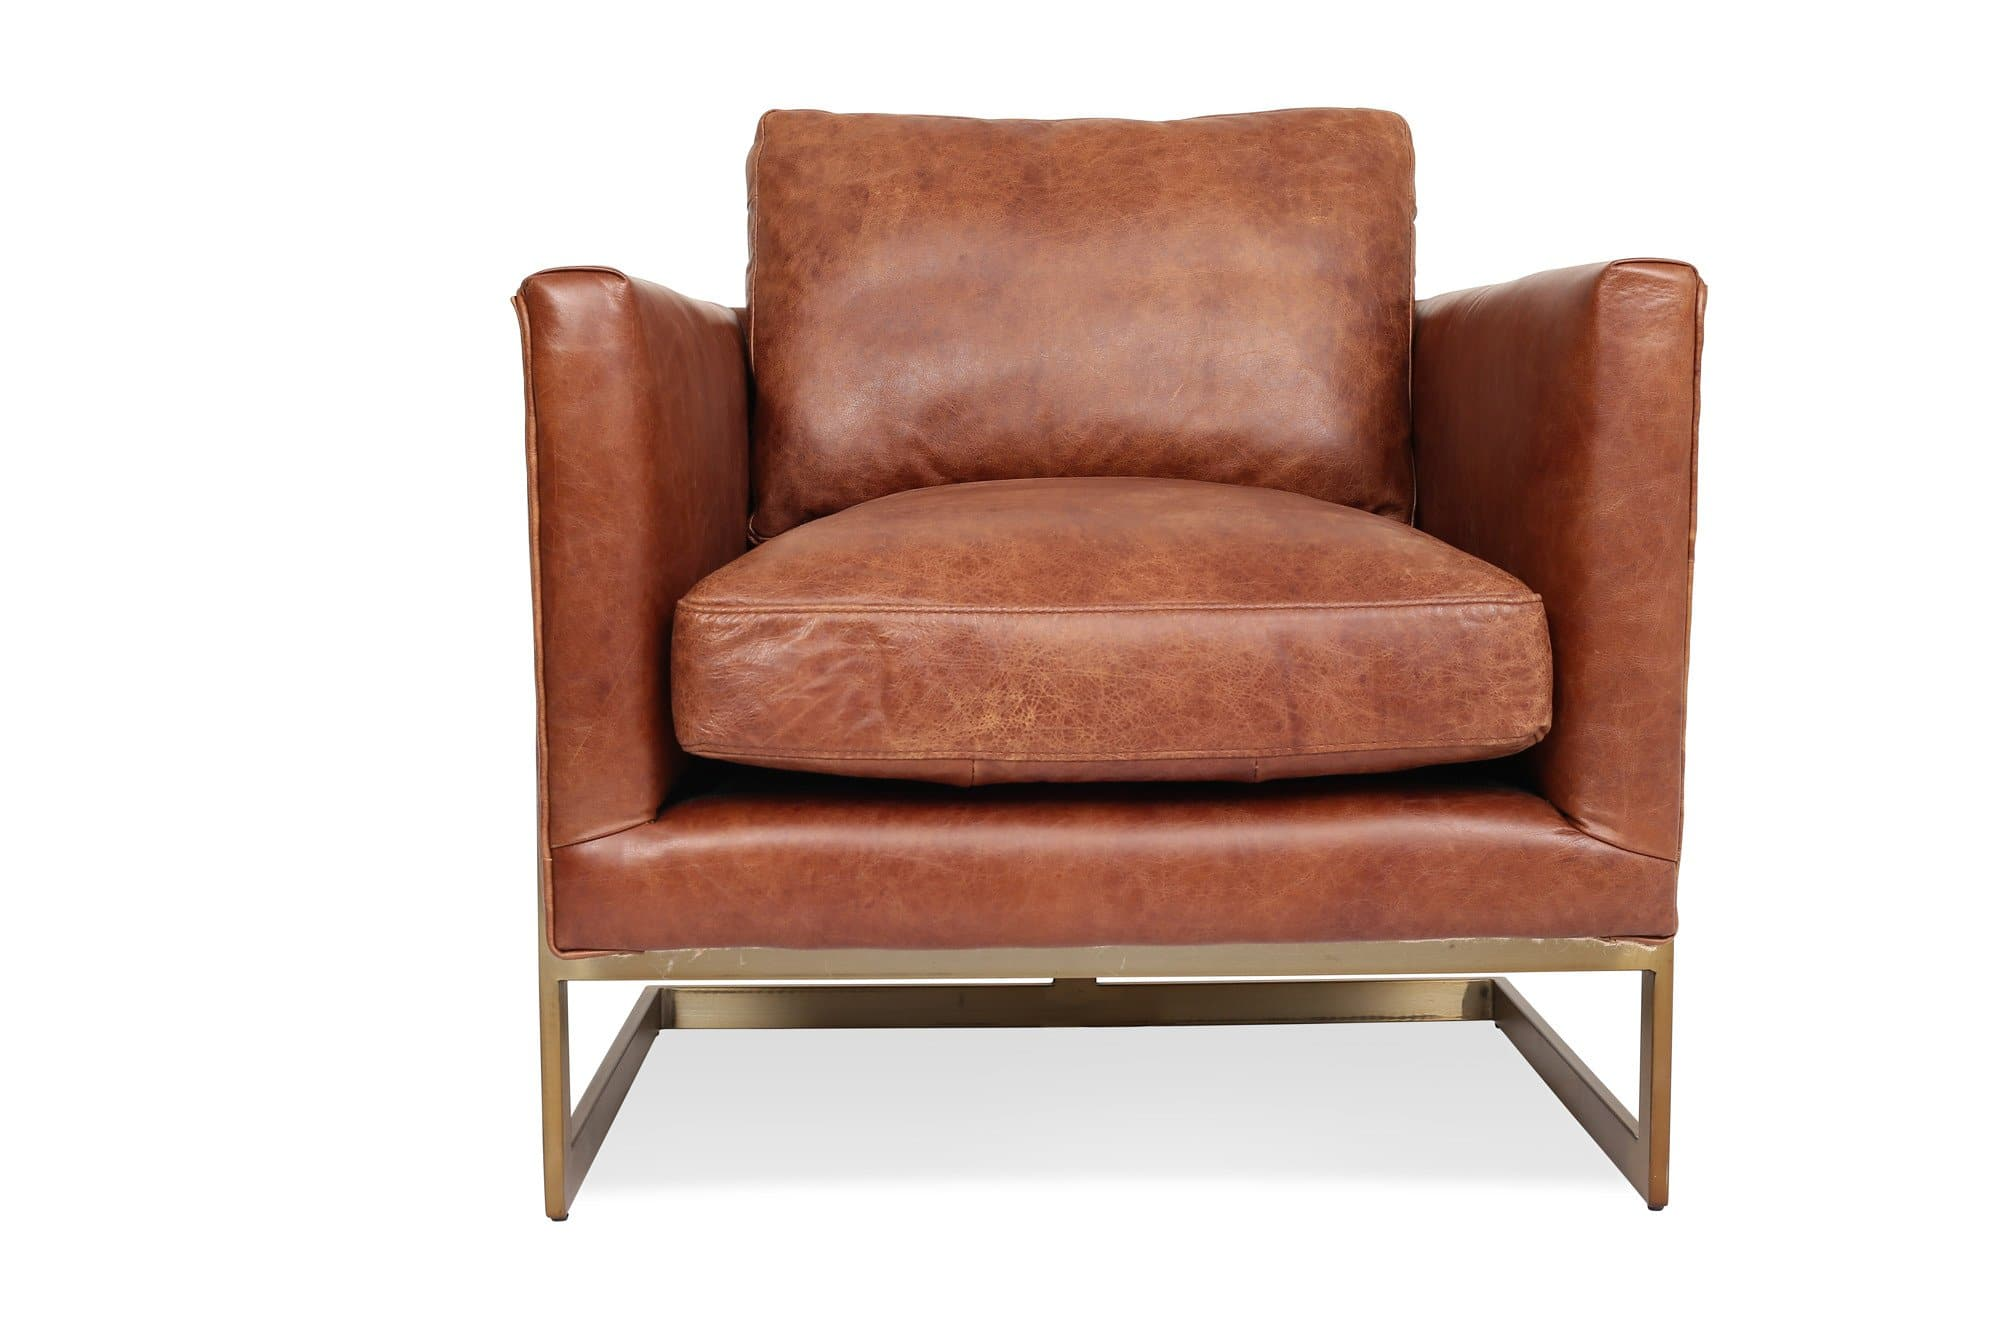 London Lounge Chair Edloe Finch Furniture Co